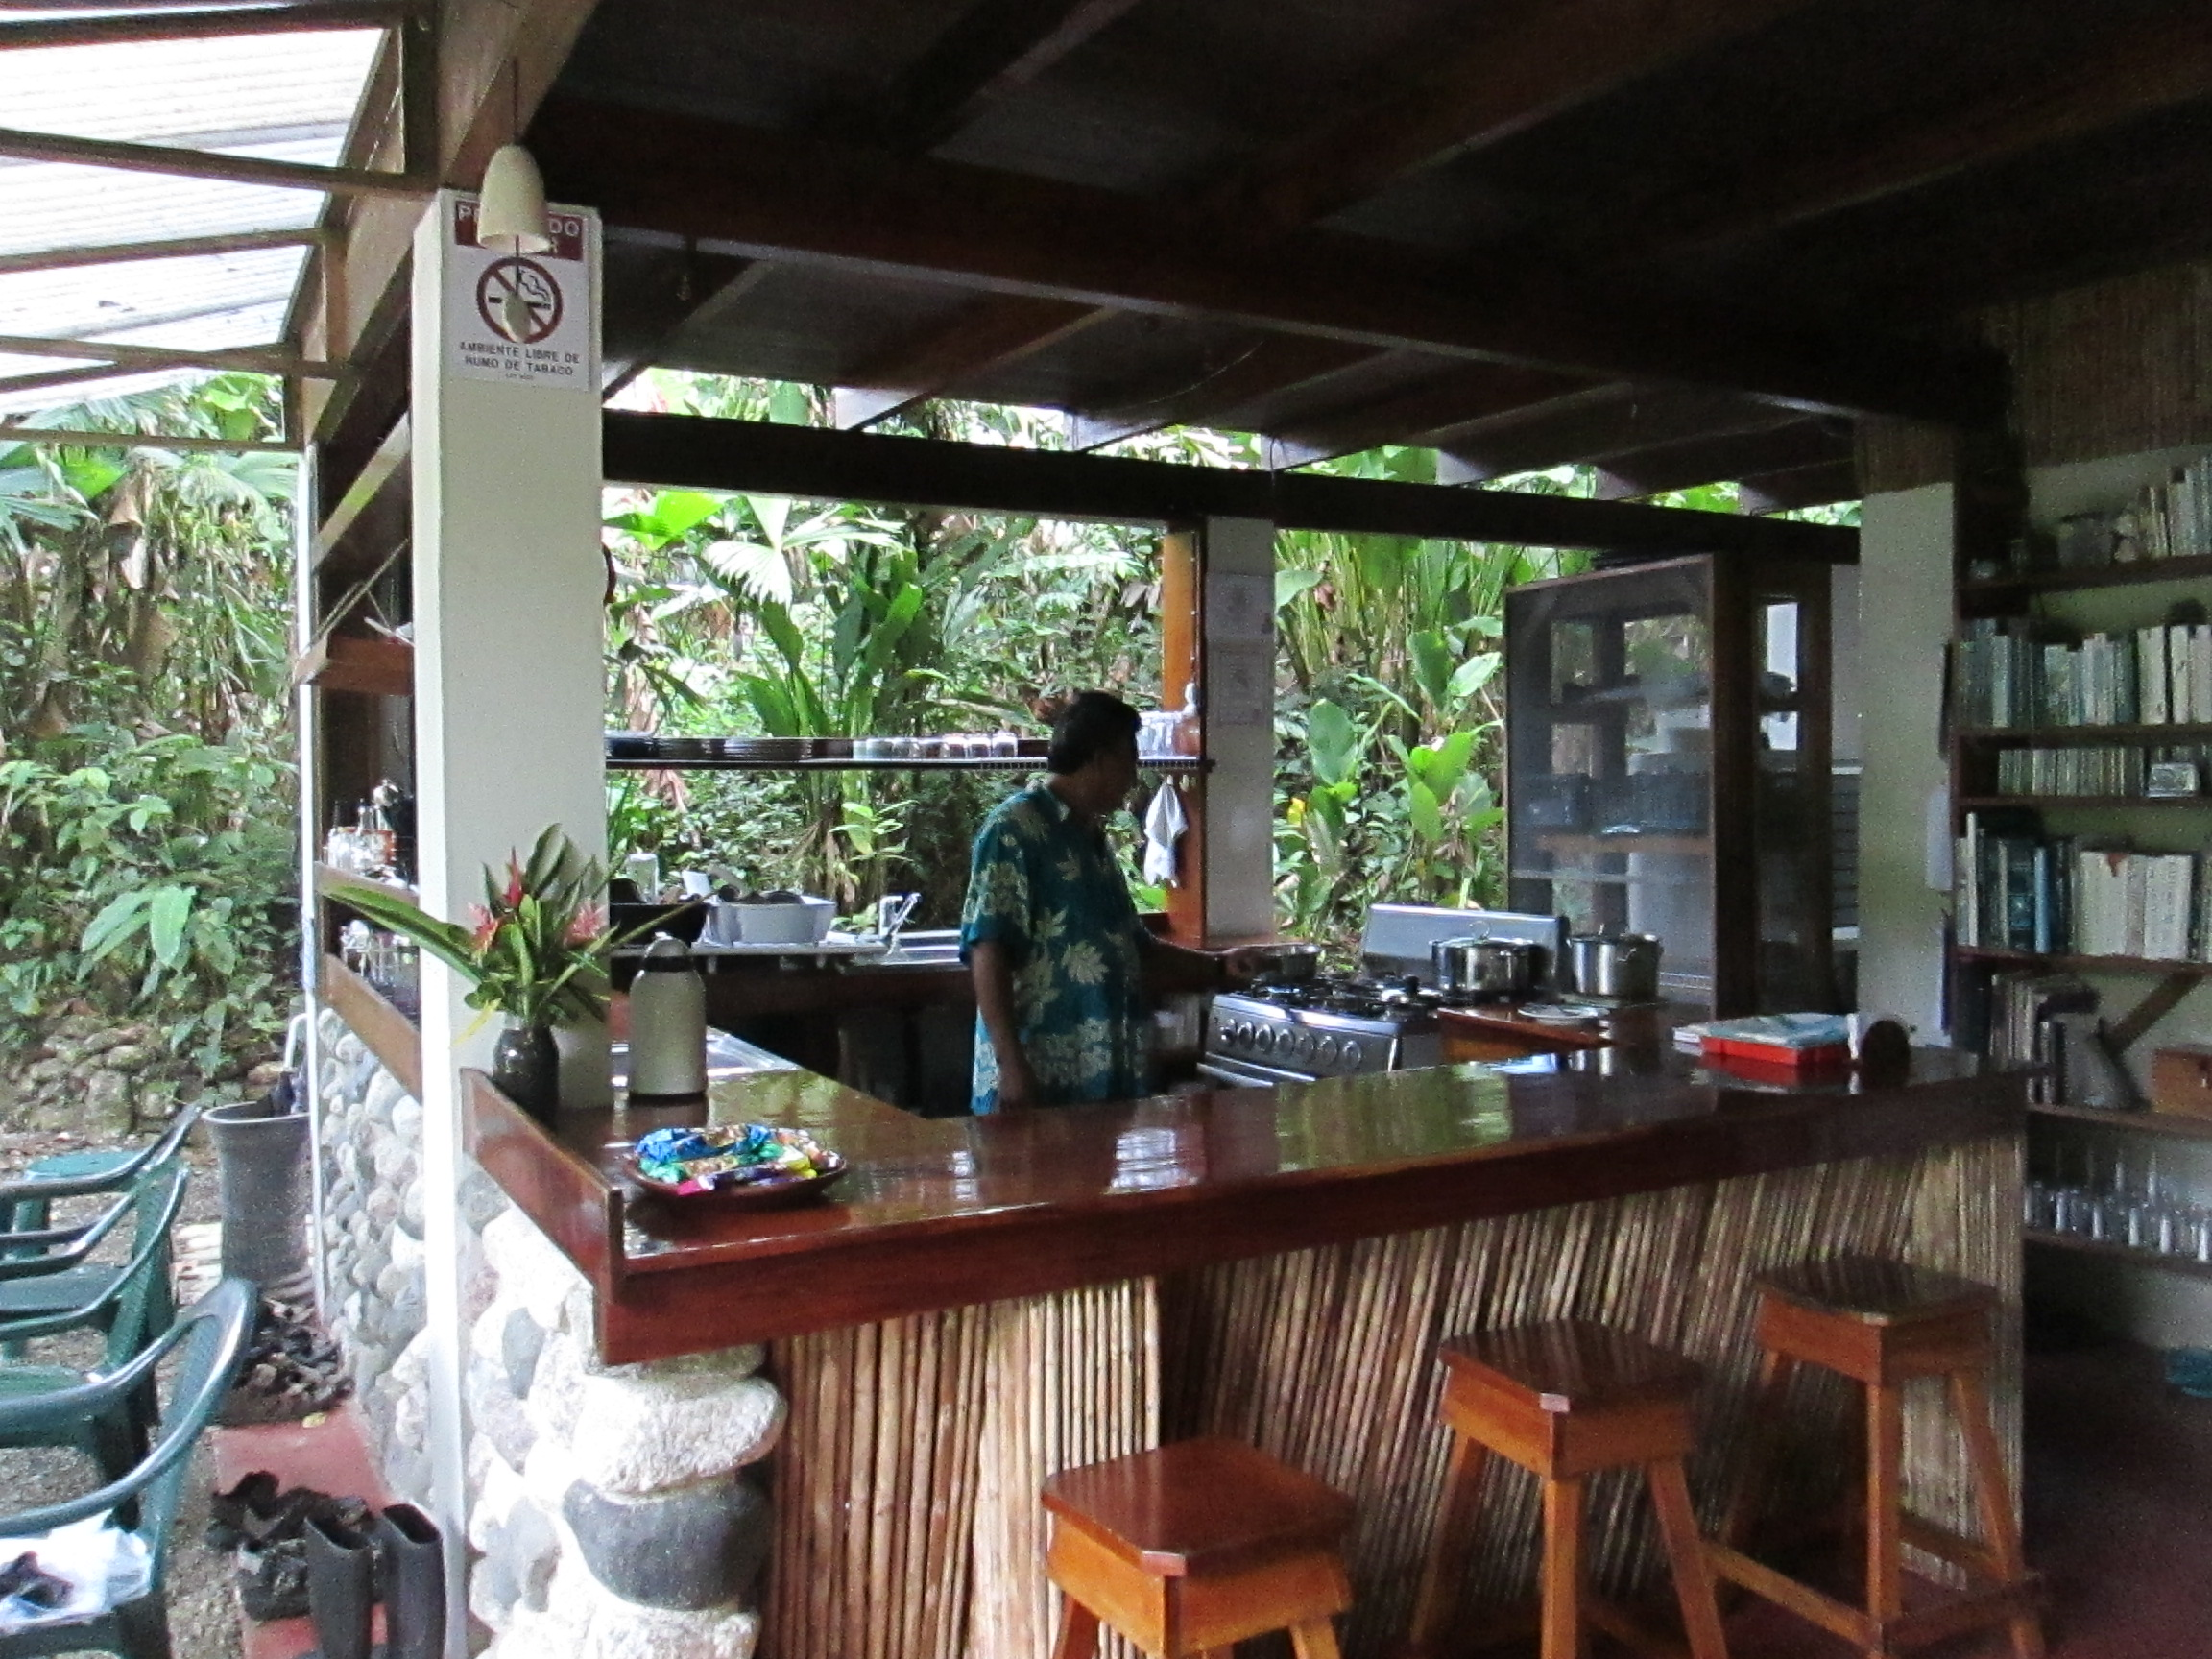 Our lodge's kitchen, which serves up some of the best food on the Osa Peninsula